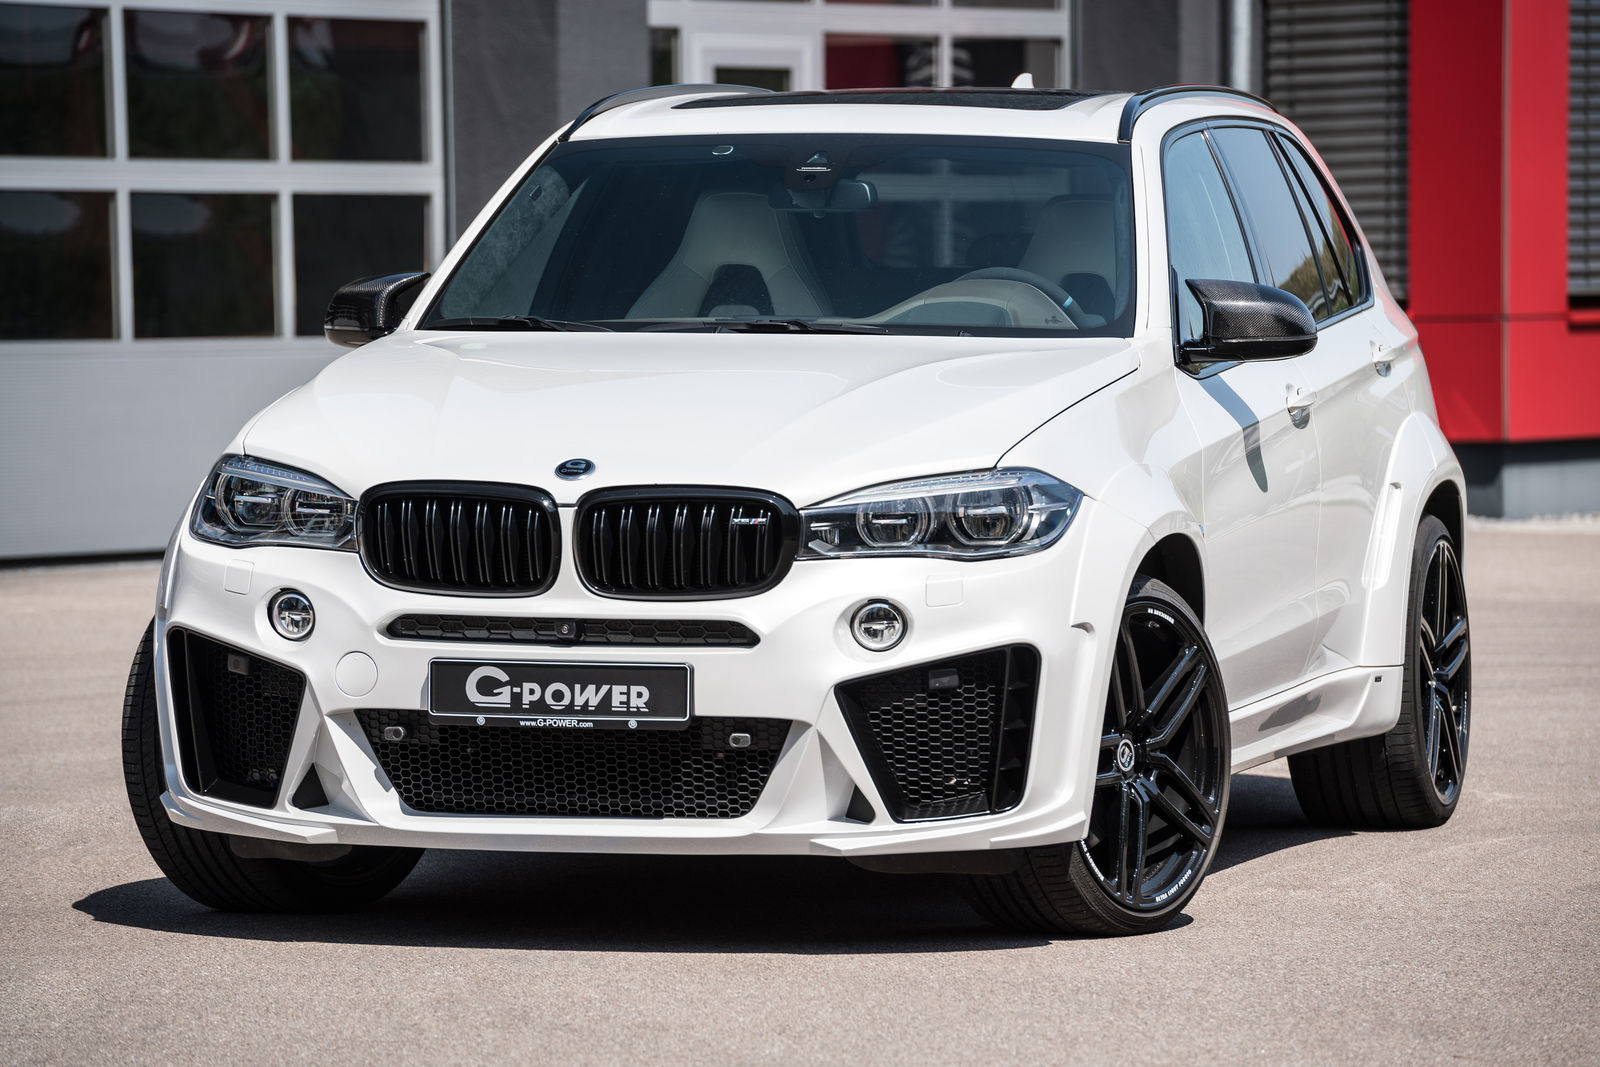 g power bmw x5 m typhoon is a 750 hp family rocket. Black Bedroom Furniture Sets. Home Design Ideas